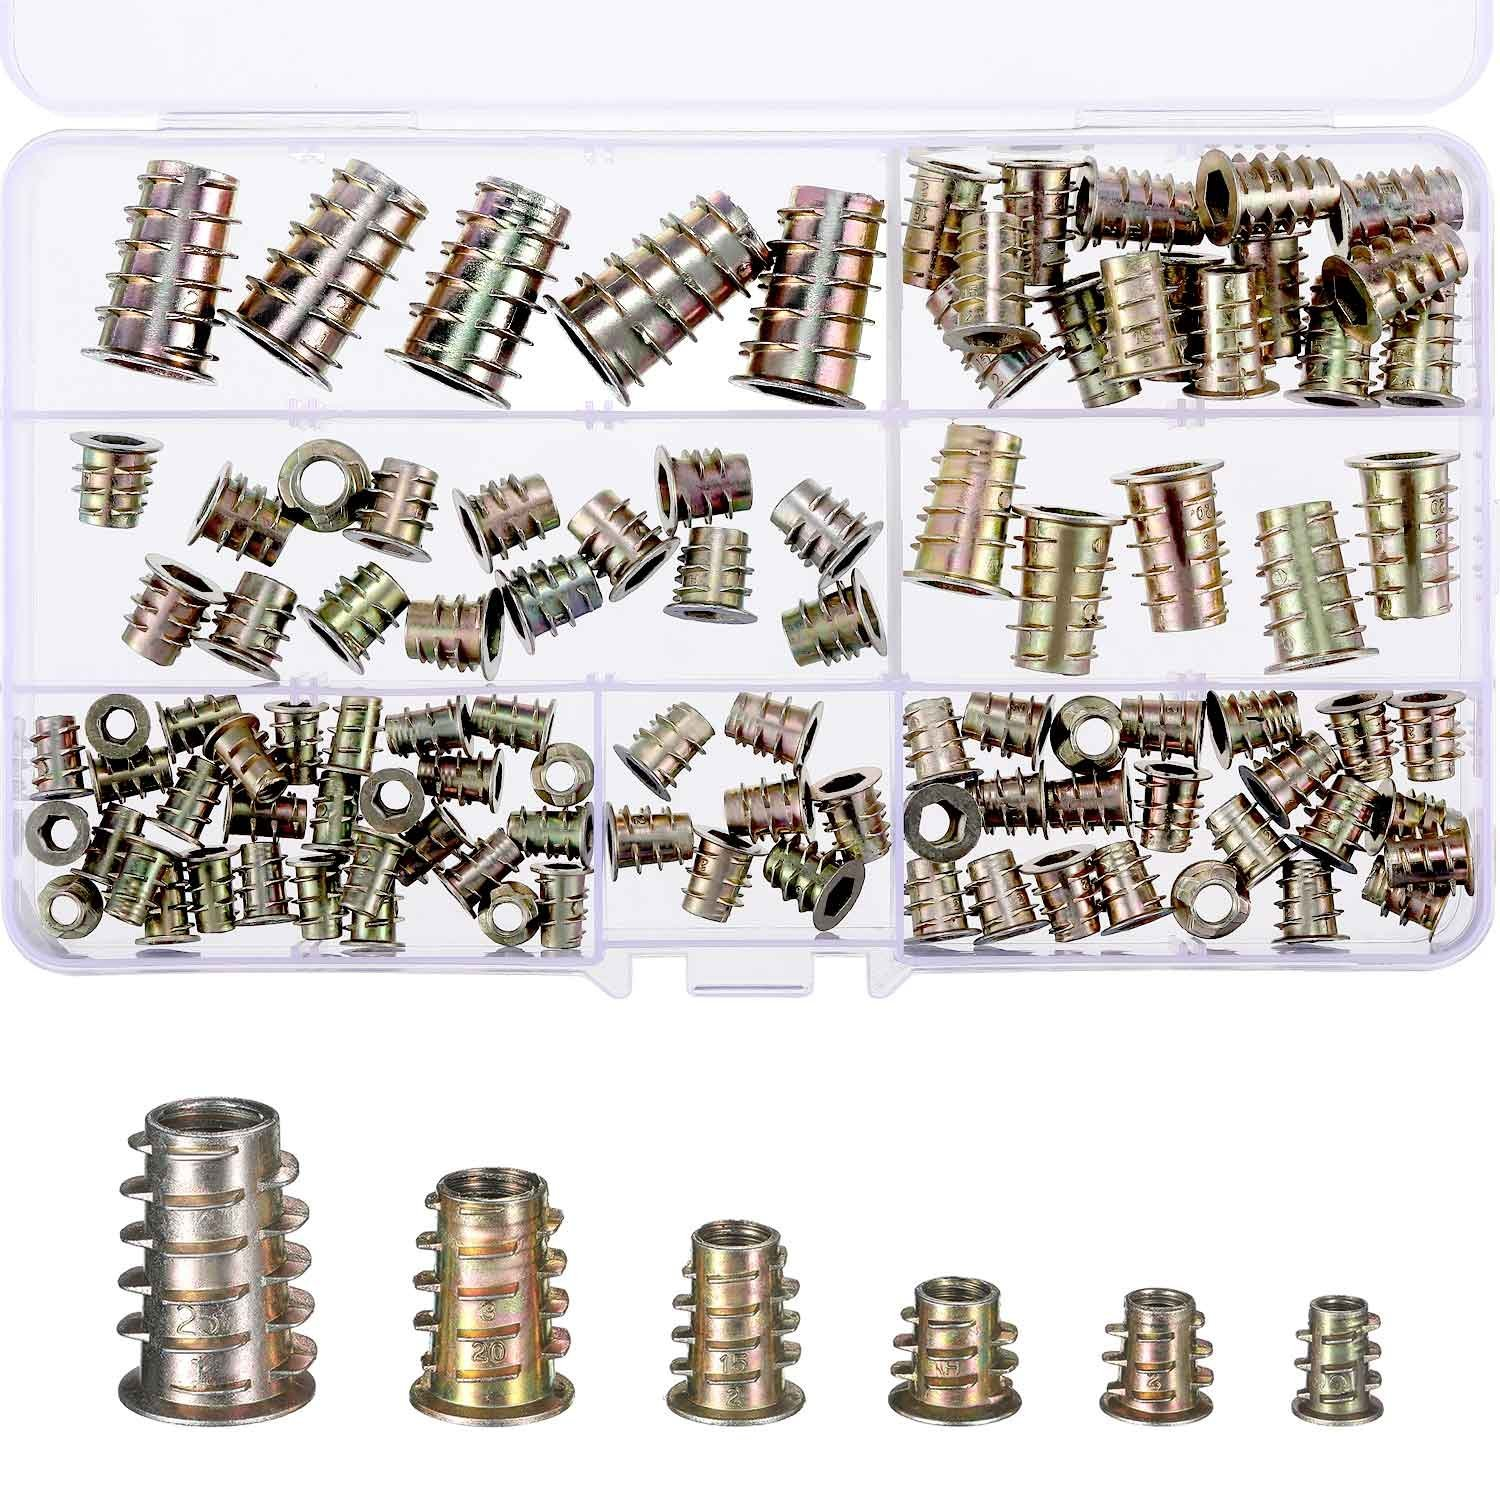 Baby Bed Crib Screws Hardware Replacement Kit 6-Set M6x18 mm Stainless Steel Hex Socket Head Bolt and Barrel Nuts